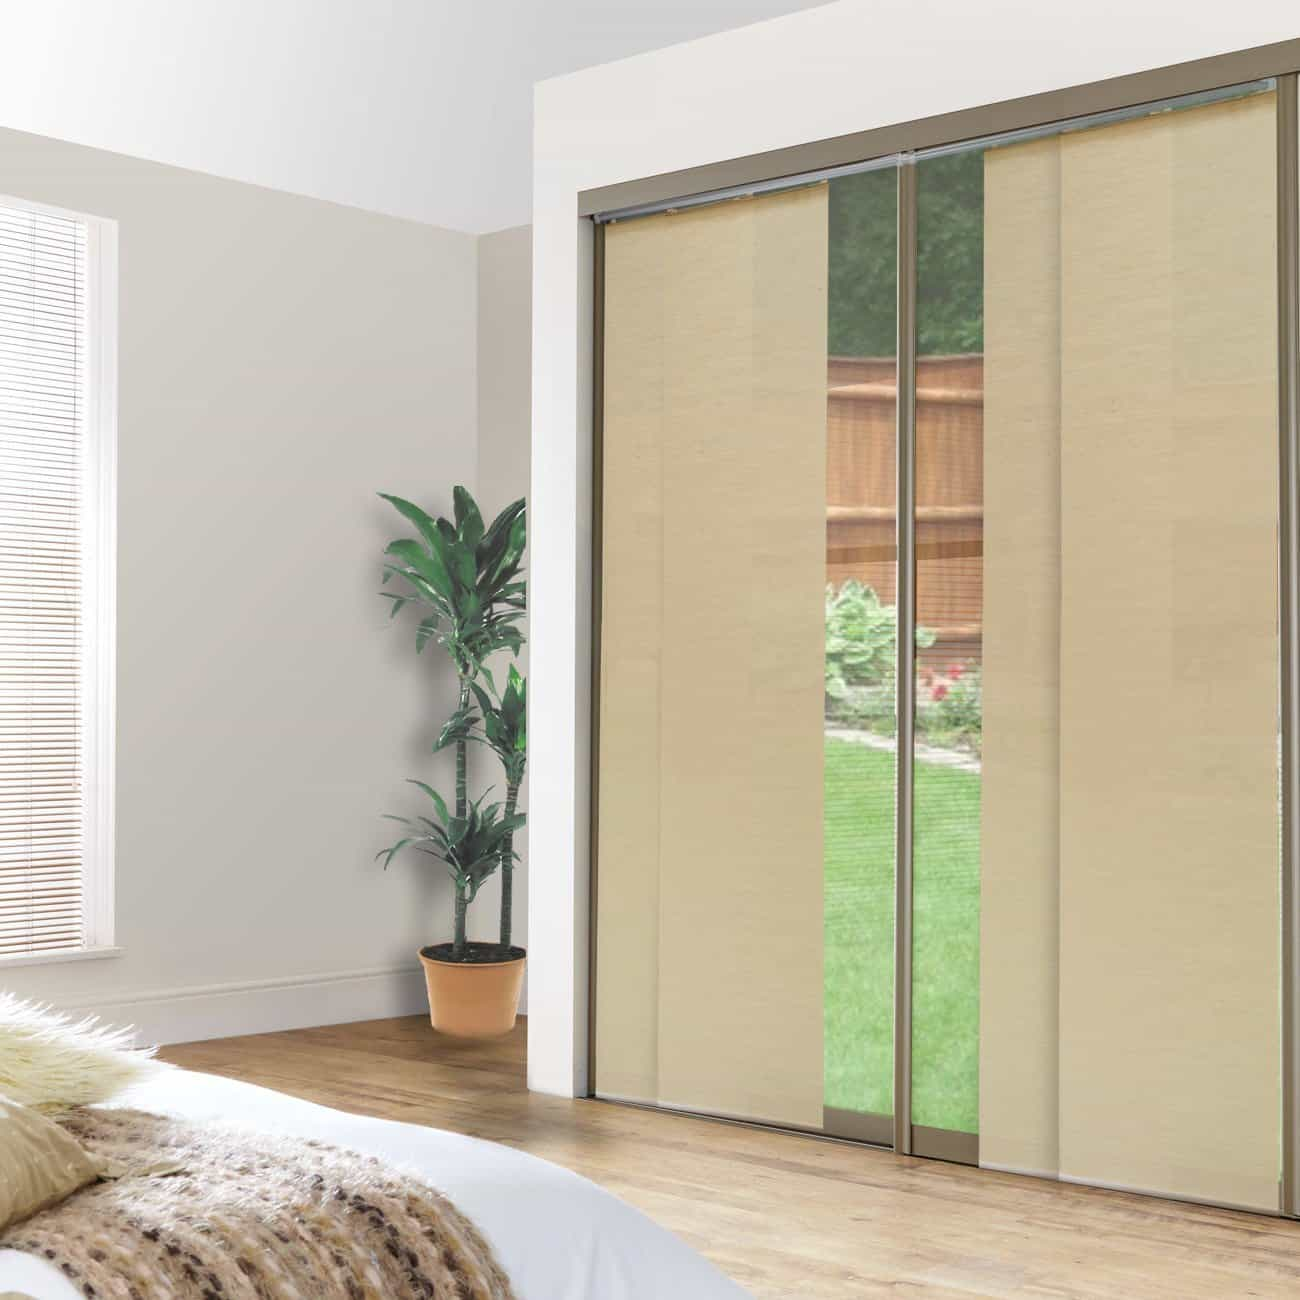 Door privacy front door privacy istranka with regard to for Sliding glass doors 80 x 96